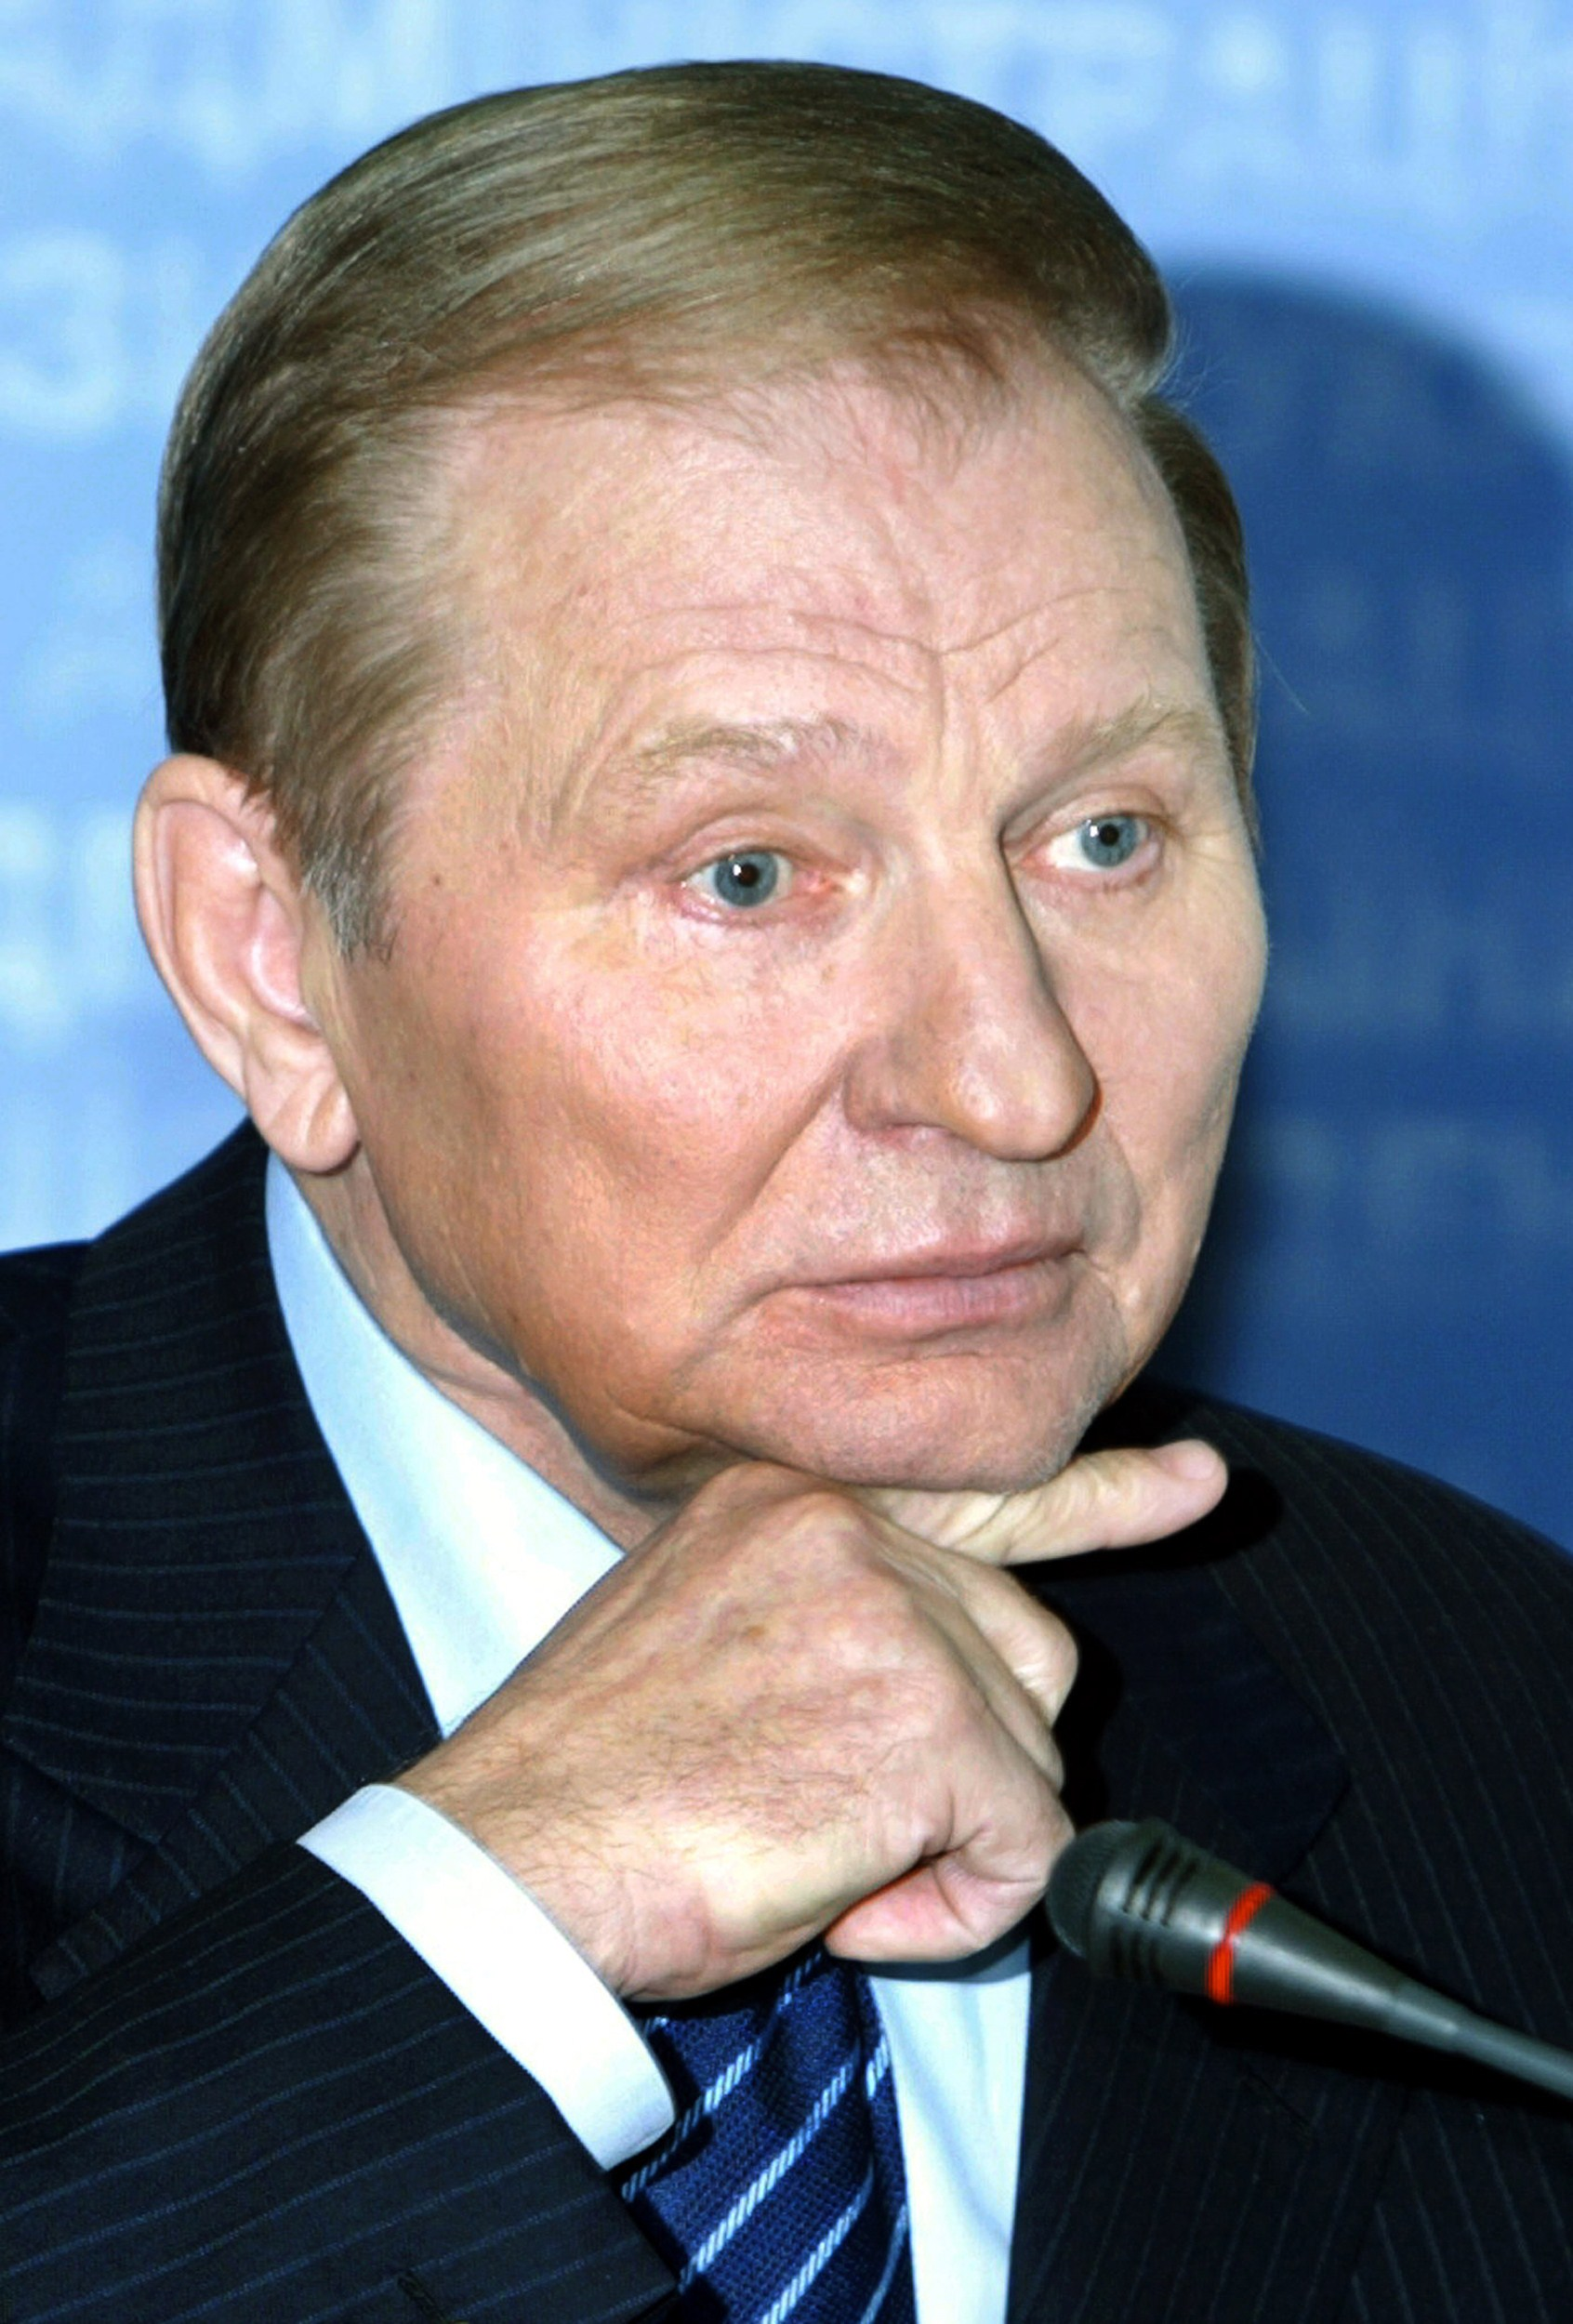 President Leonid Kuchma gesturing during a press-conference in Kiev. Ukraine